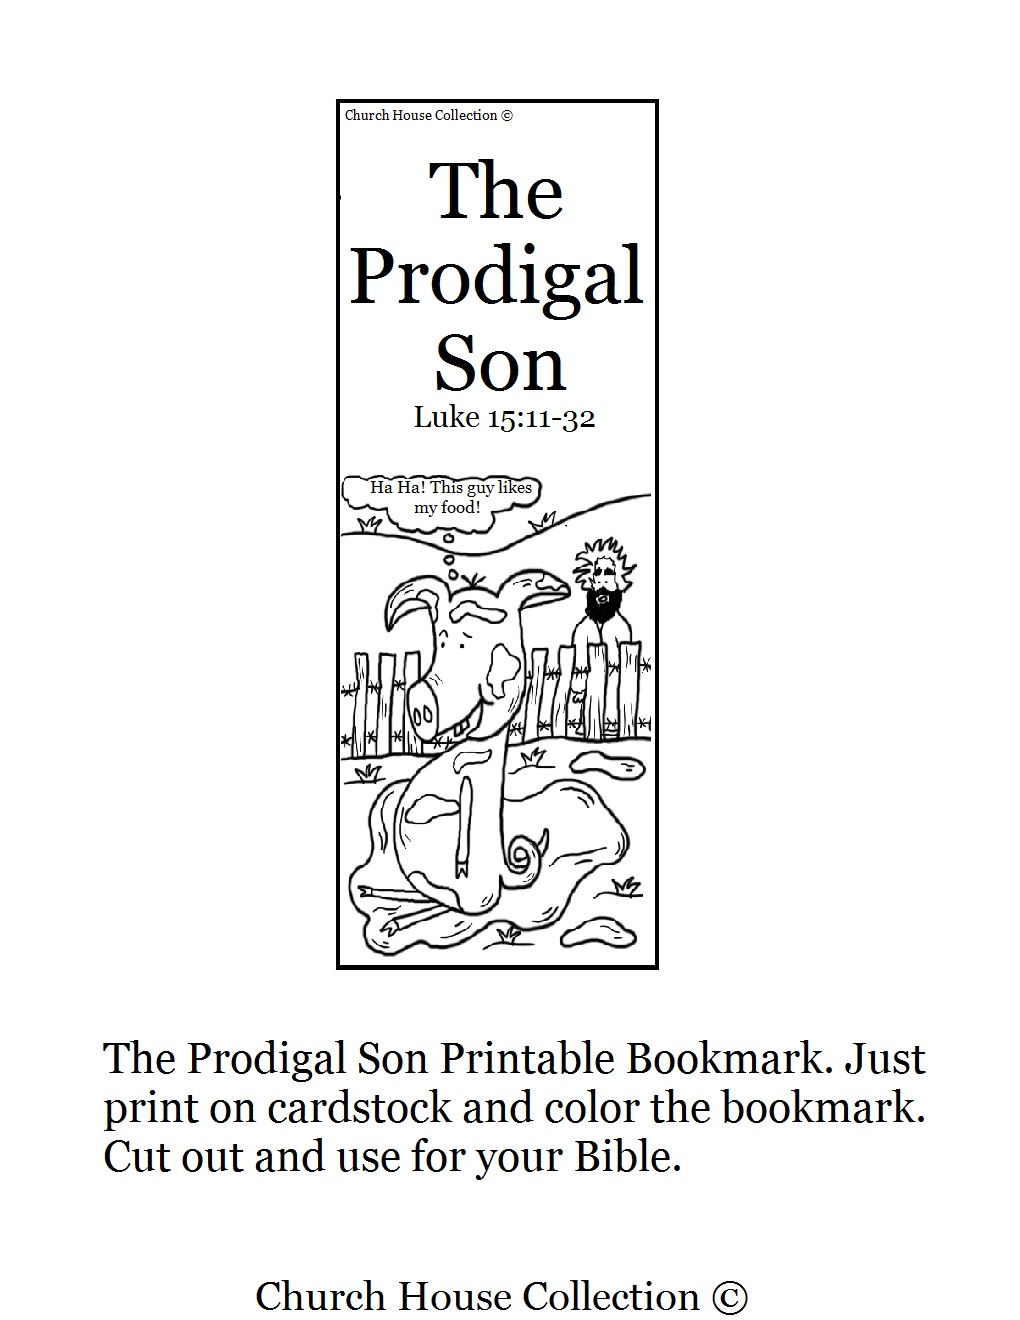 free christian clip art prodigal son - photo #29